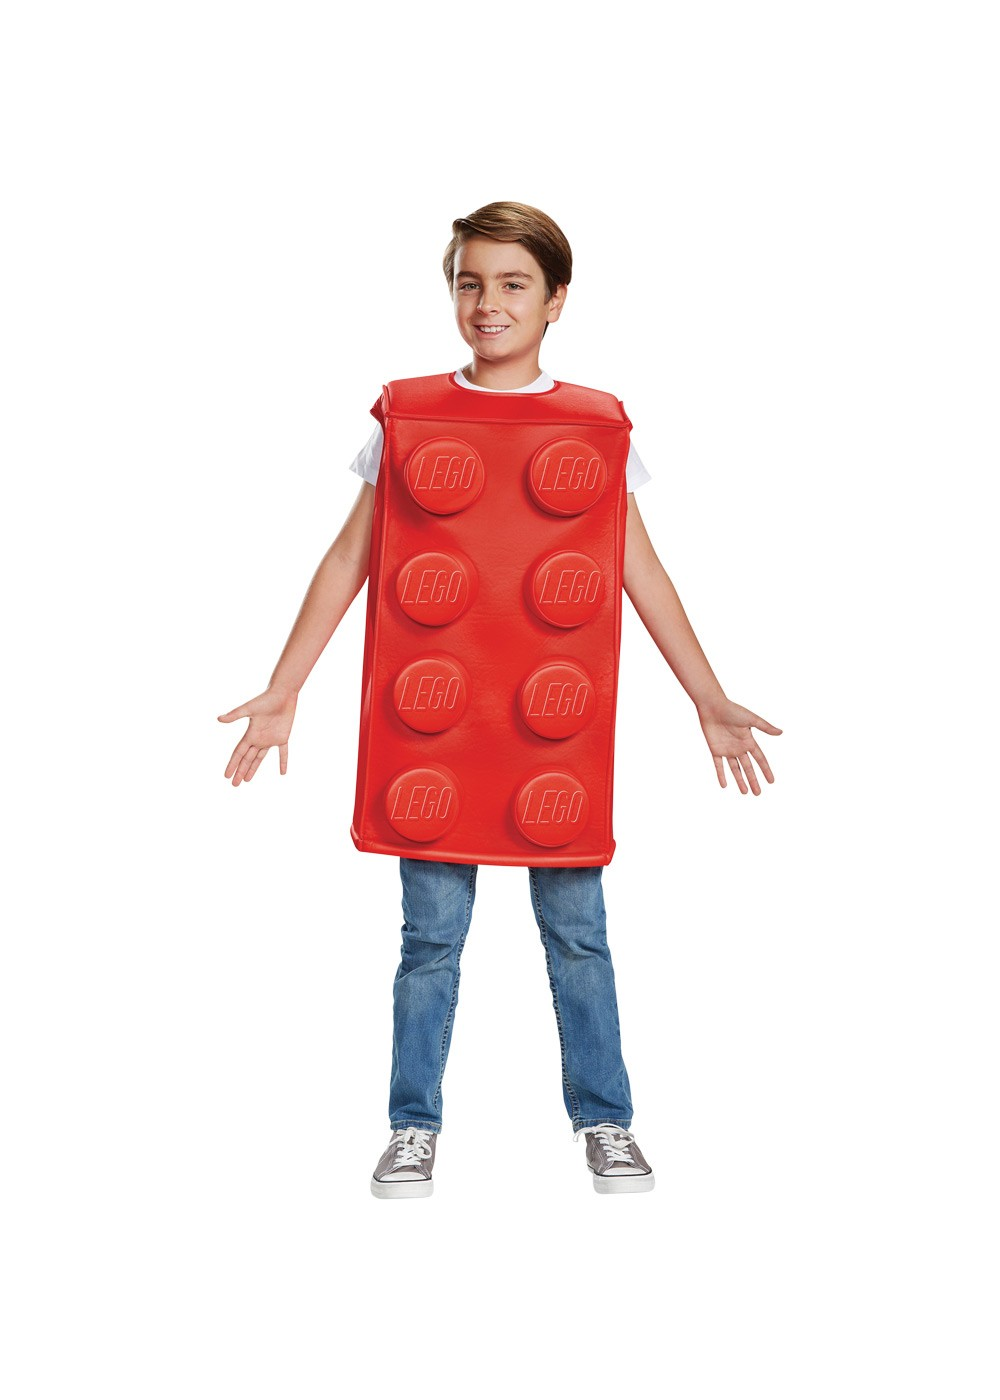 Lego Brick Boys Costume